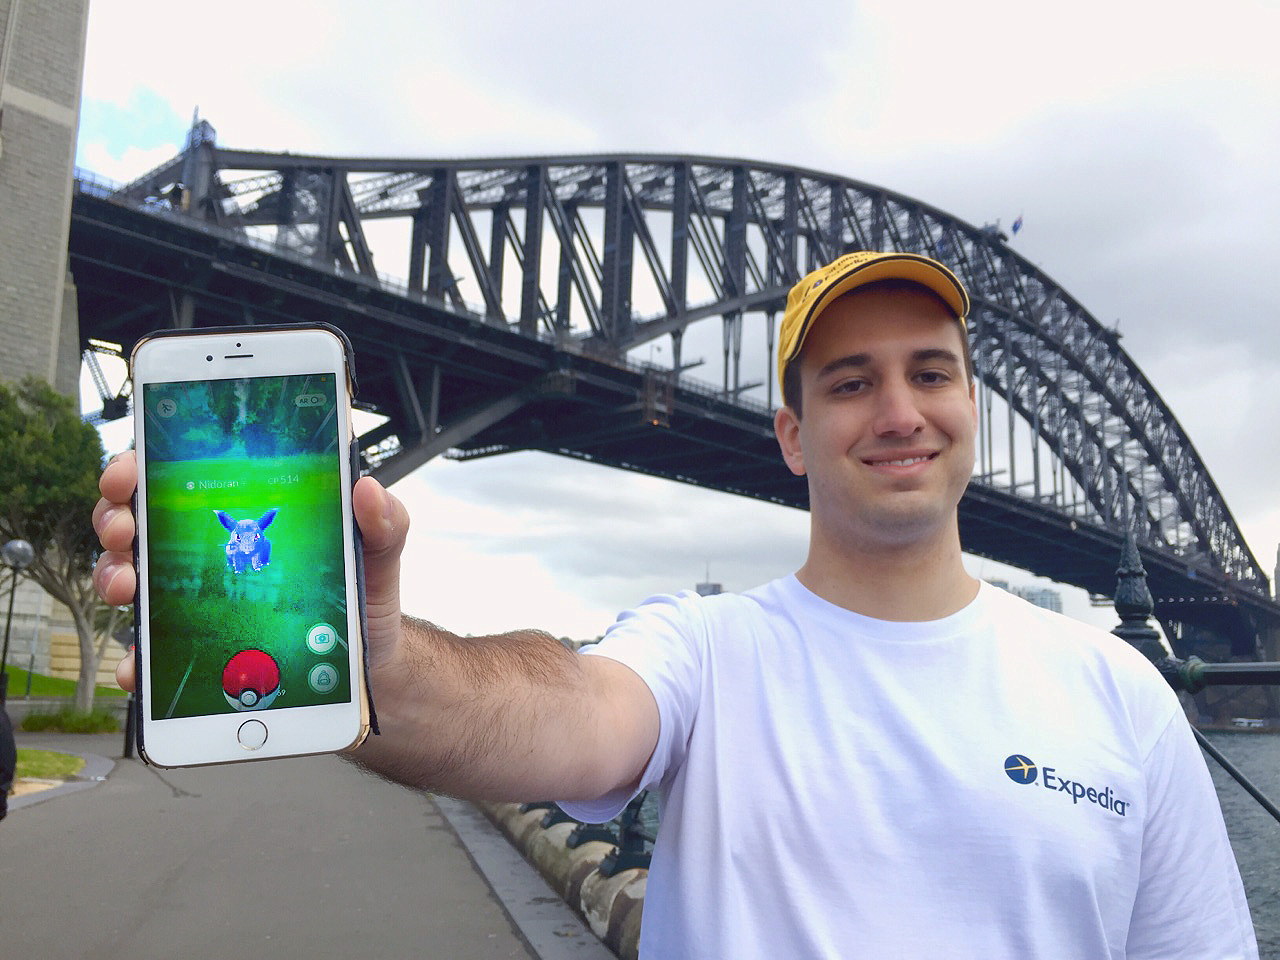 The Pokémon Go Master on a quest to catch 'em all